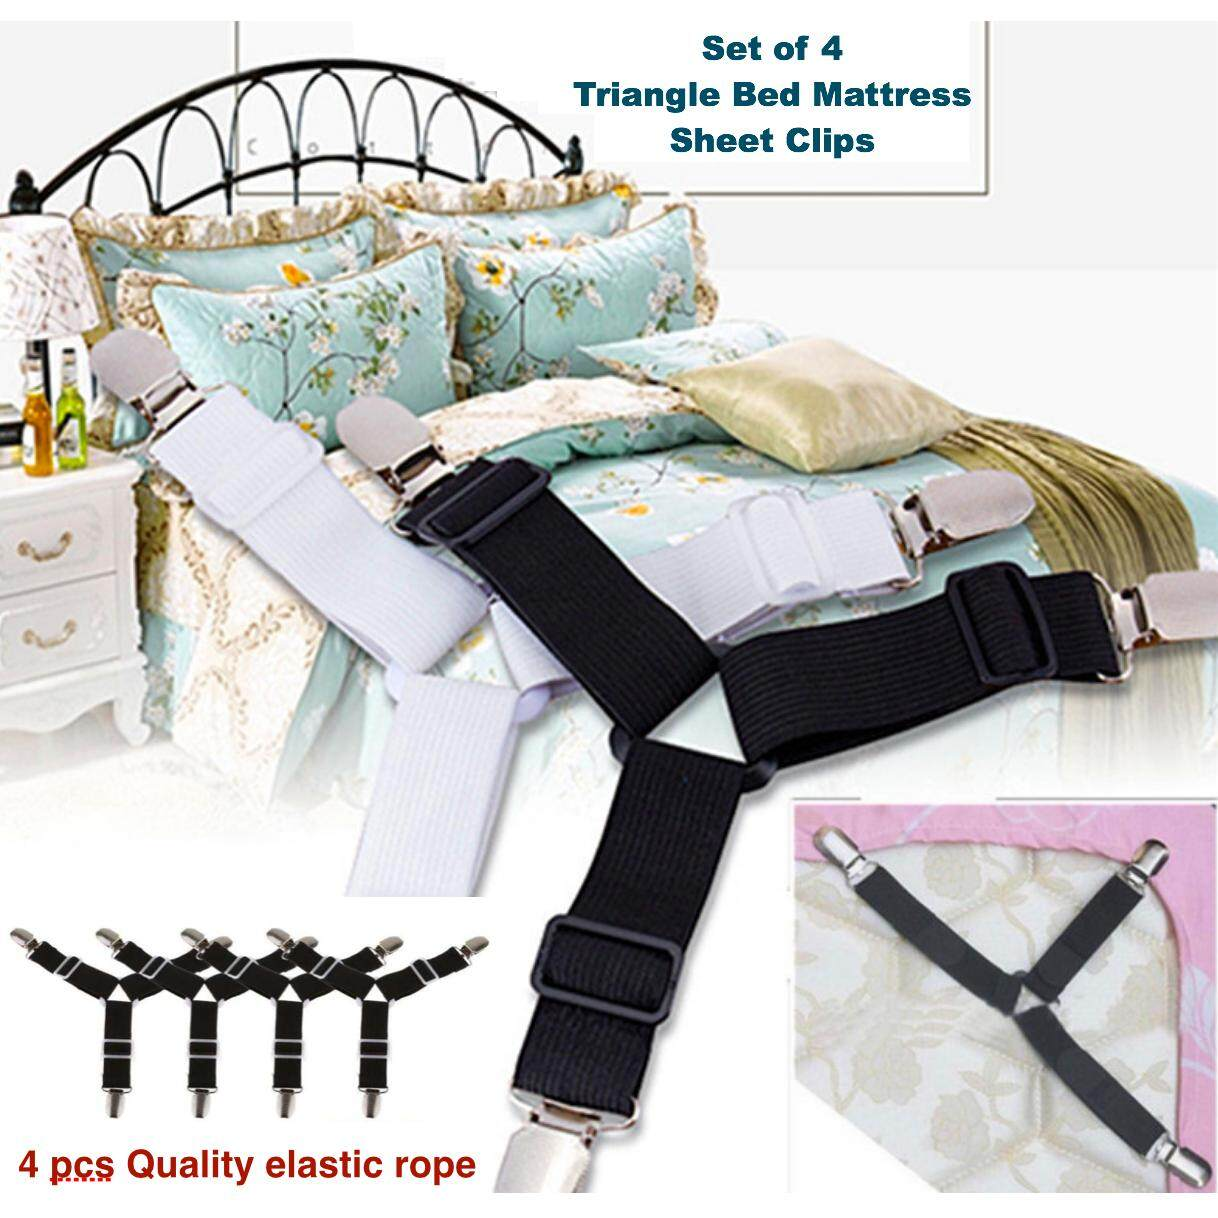 4PCS Triangle Mattress Sheet Clips Grippers Elastic Straps Fasteners  Holders For Bed